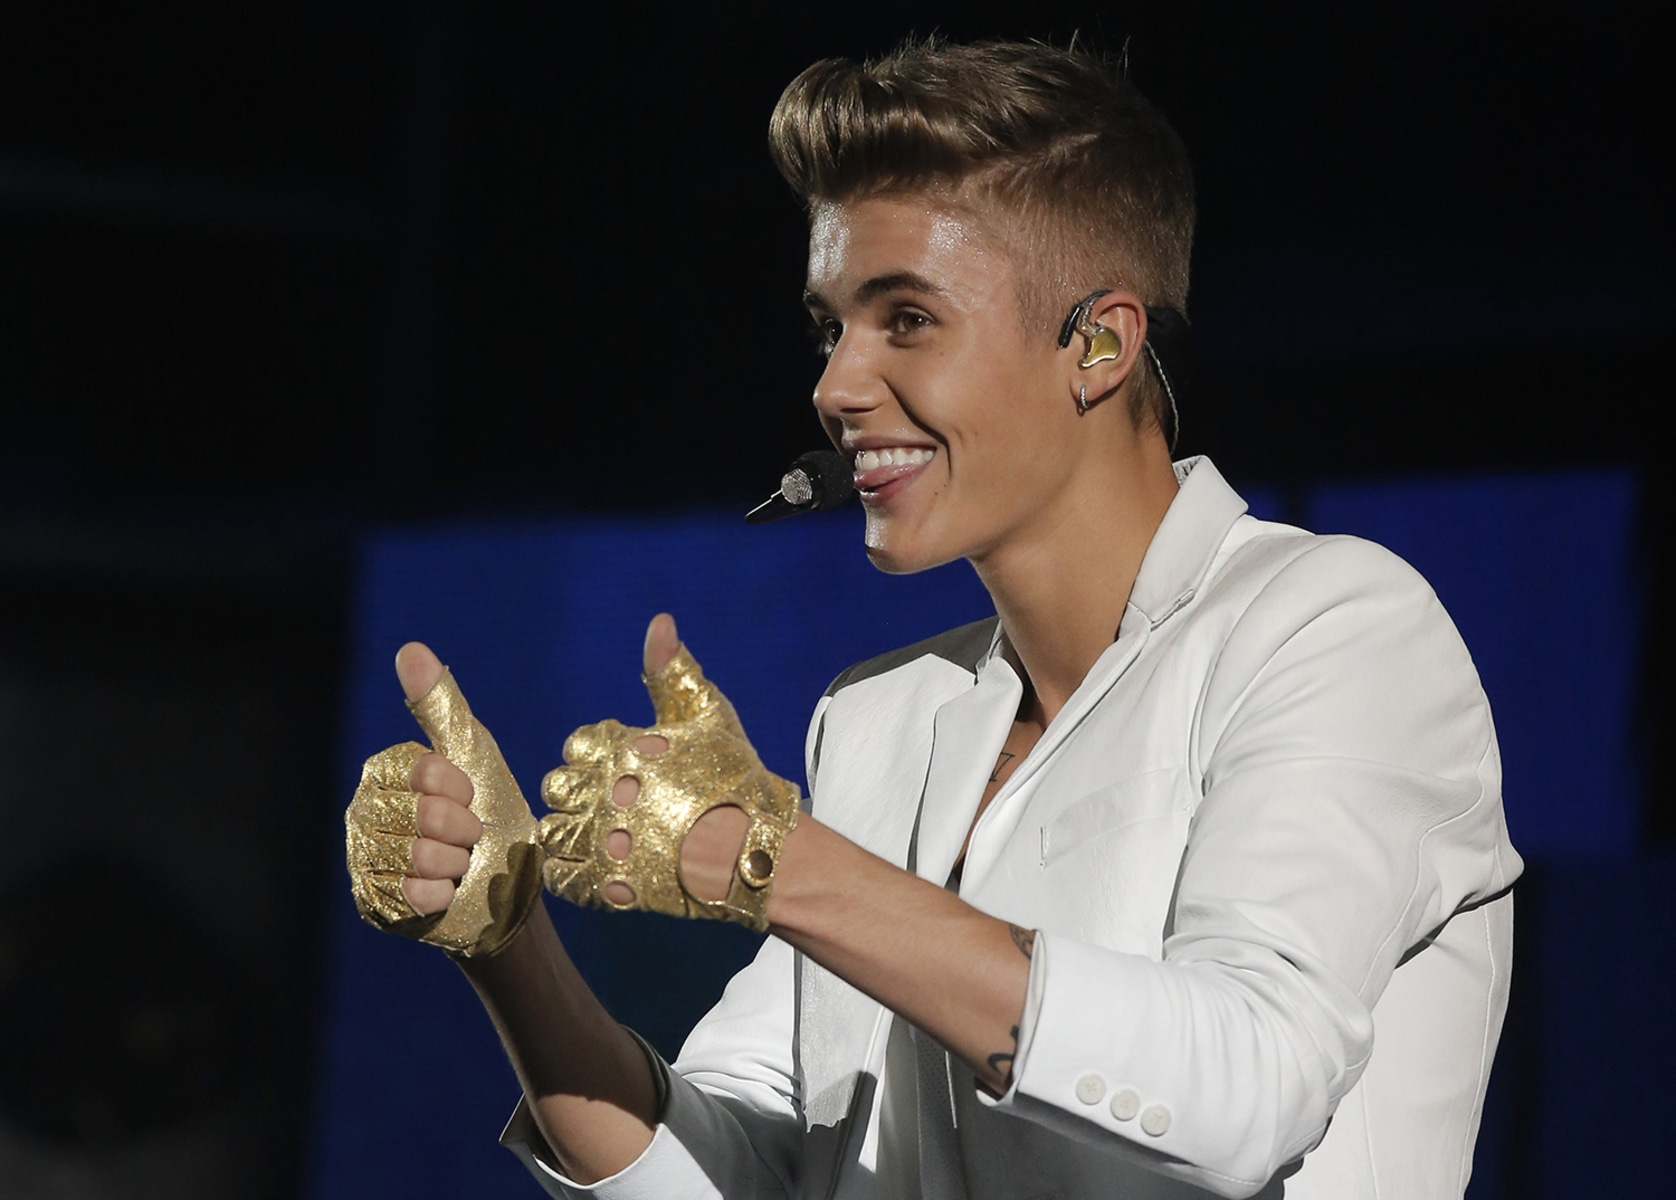 Justin Bieber Reacts to Shawn Mendes 'Liking' Hailey ...